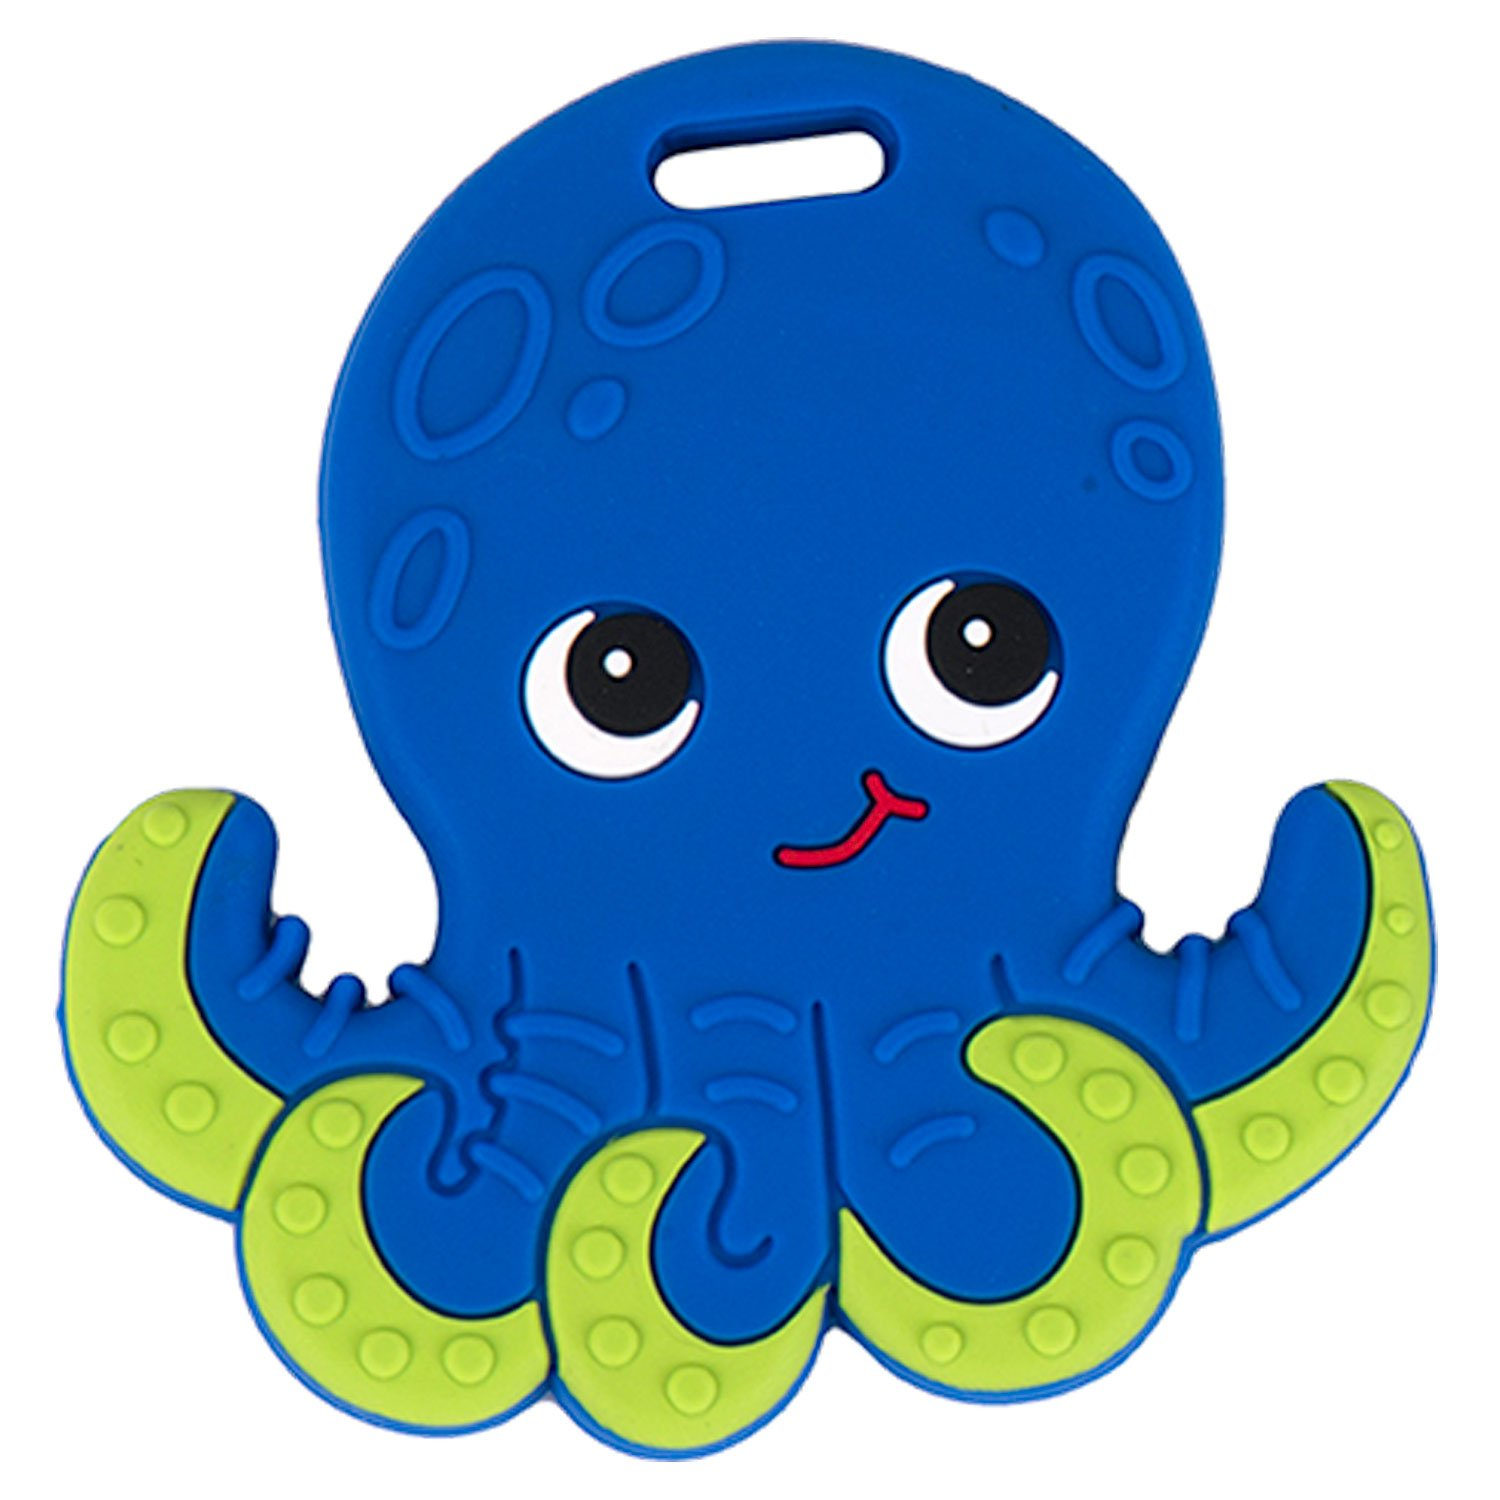 Silli Chews Baby Teethers Natural Silicone Teething Toy Blue Ollie Octopus Teether